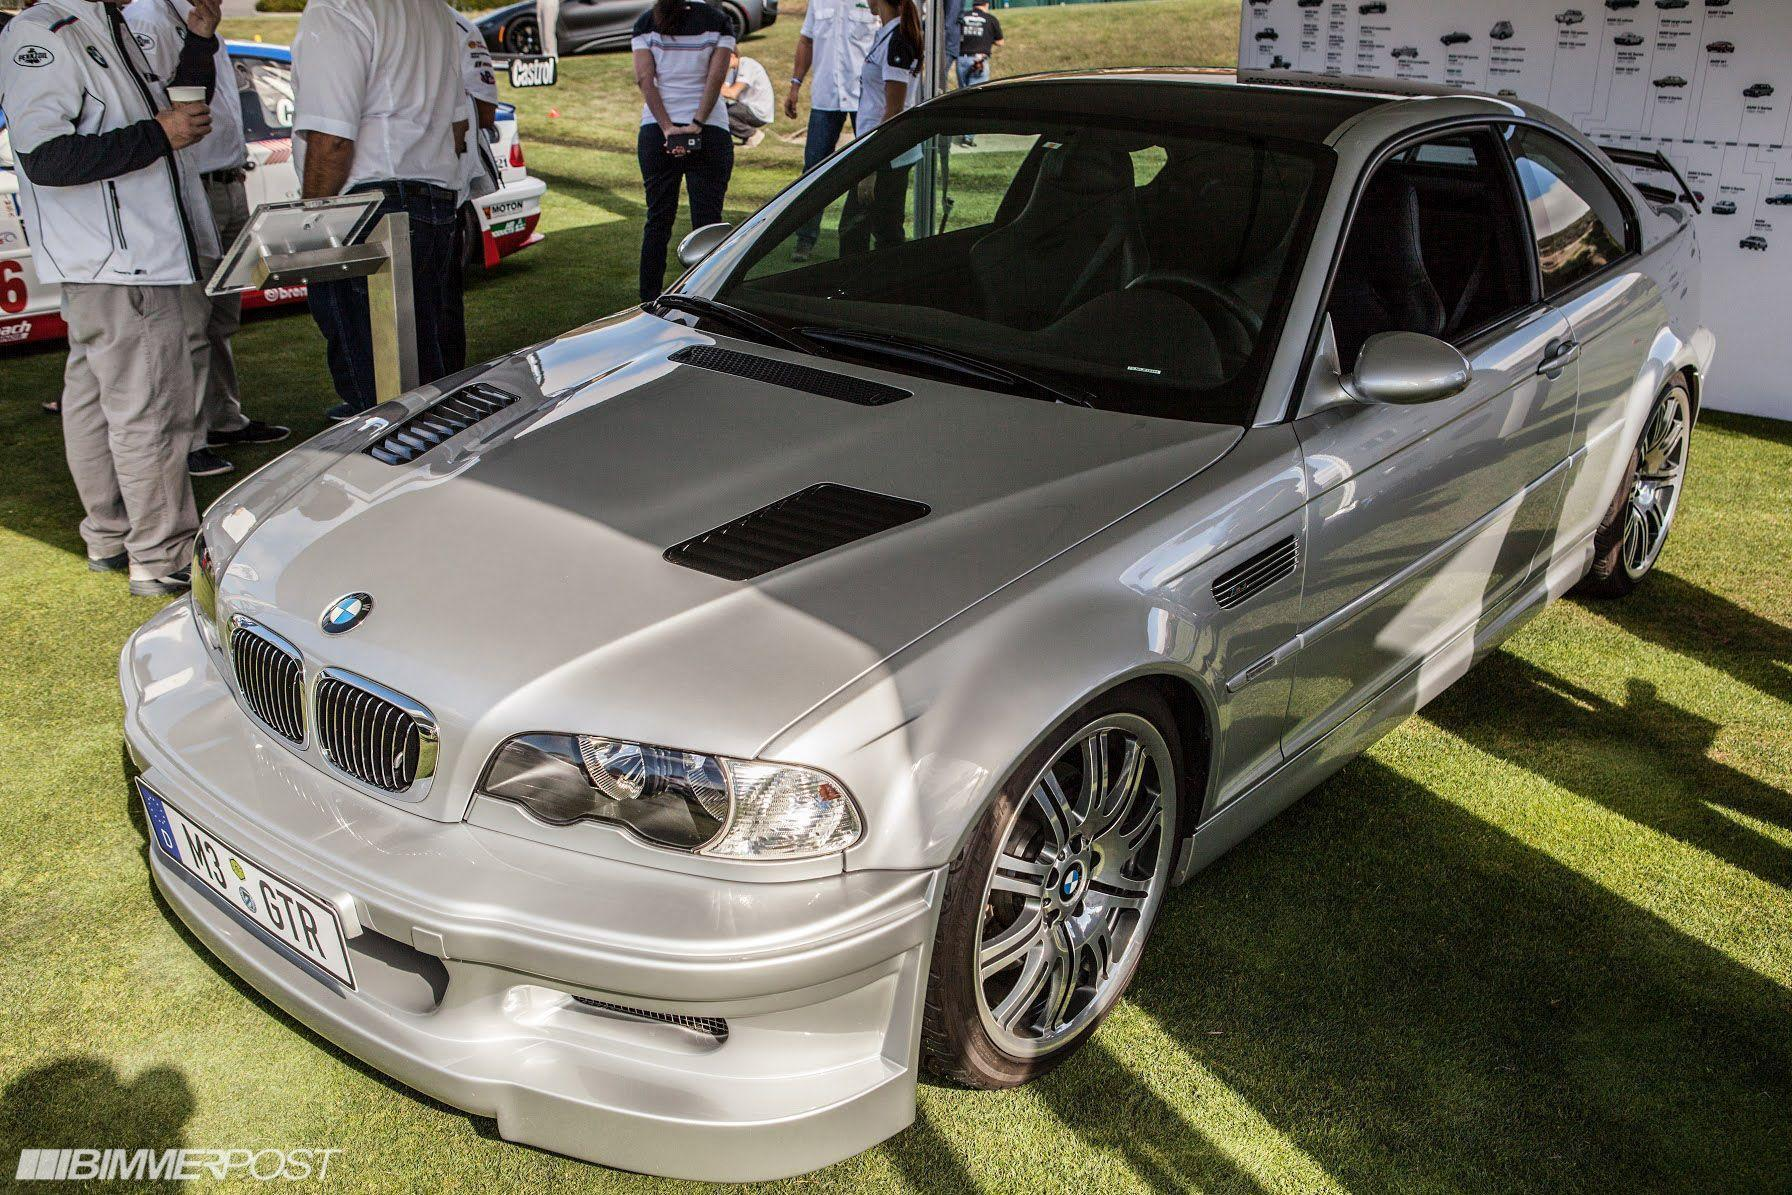 E46 M3 GTR Race and Road Car Presented at Pebble Beach